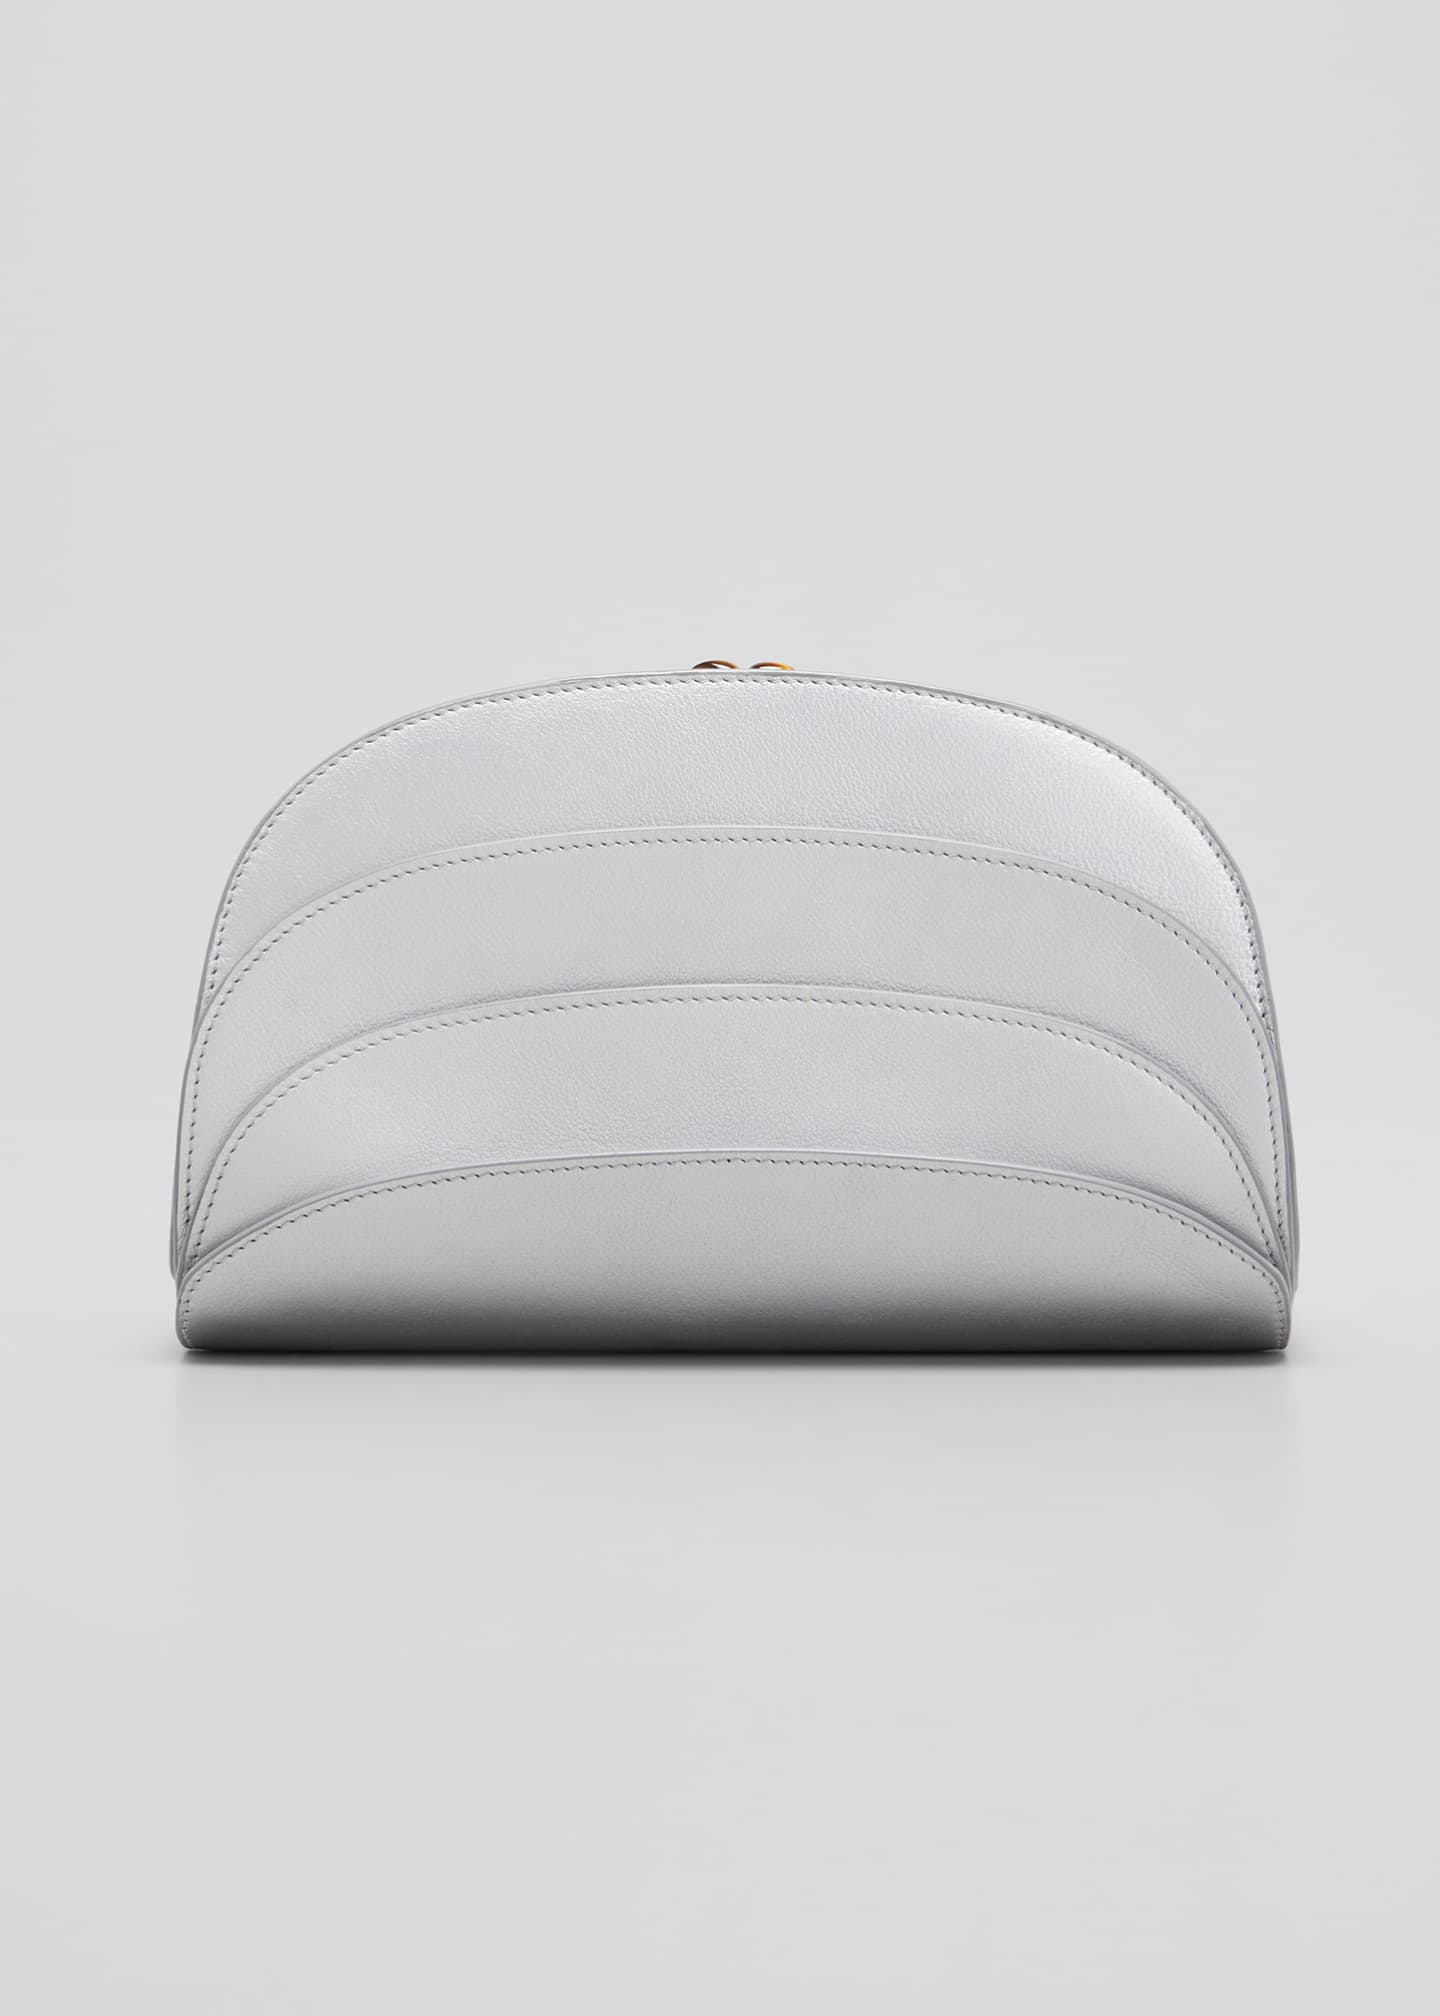 Image 1 of 5: Millefoglie C Leather Clutch Bag